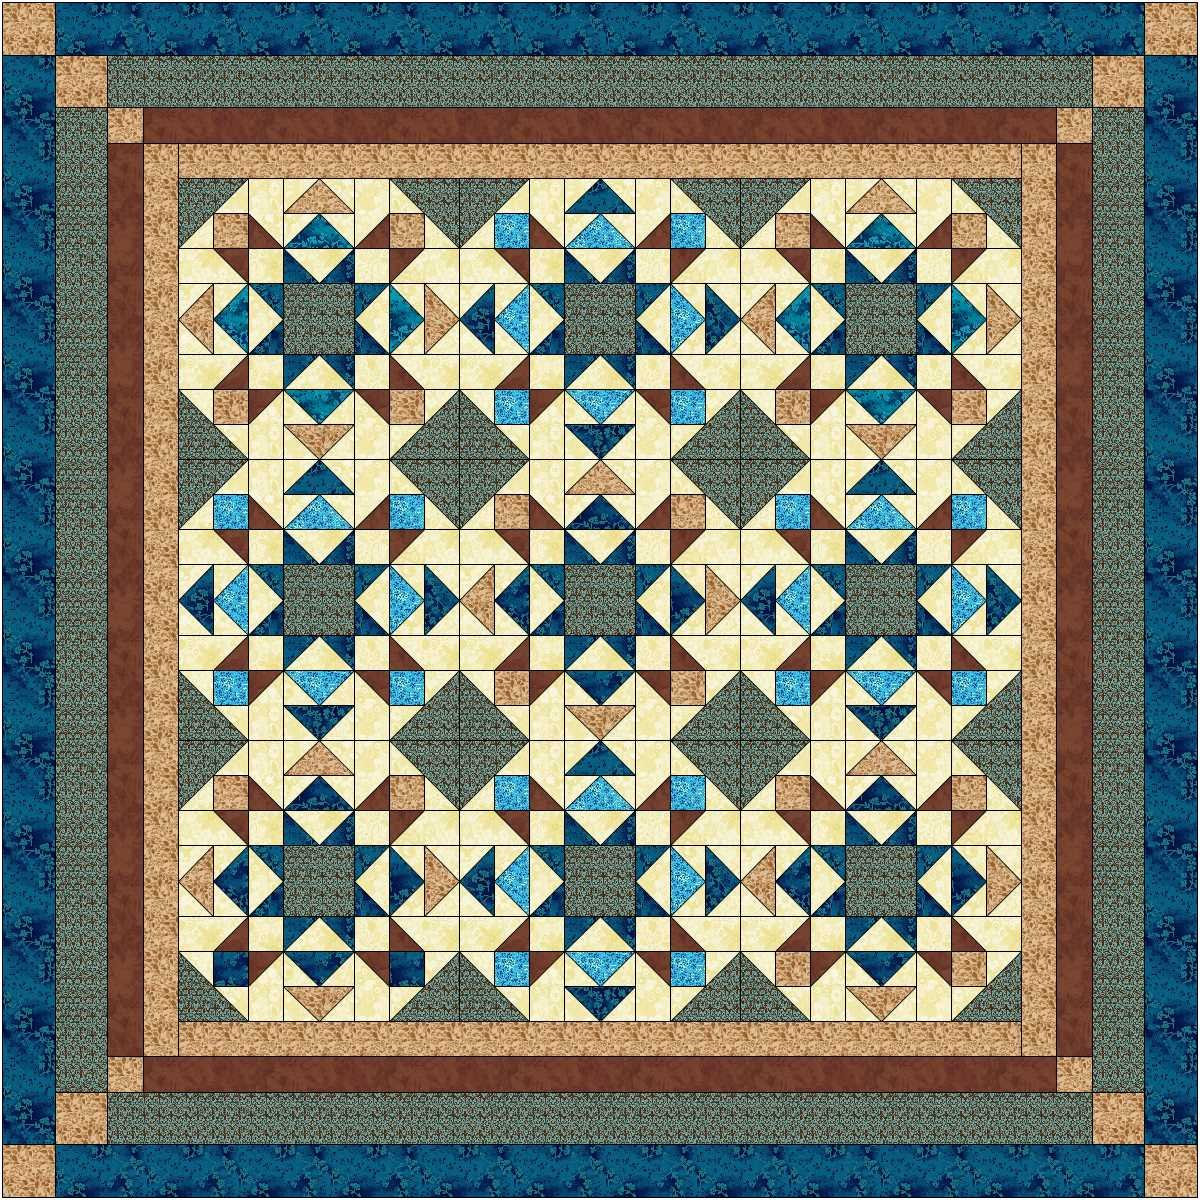 Easy Quilt Kit Reach for the Stars, Blue and Brown Galaxy/RJR